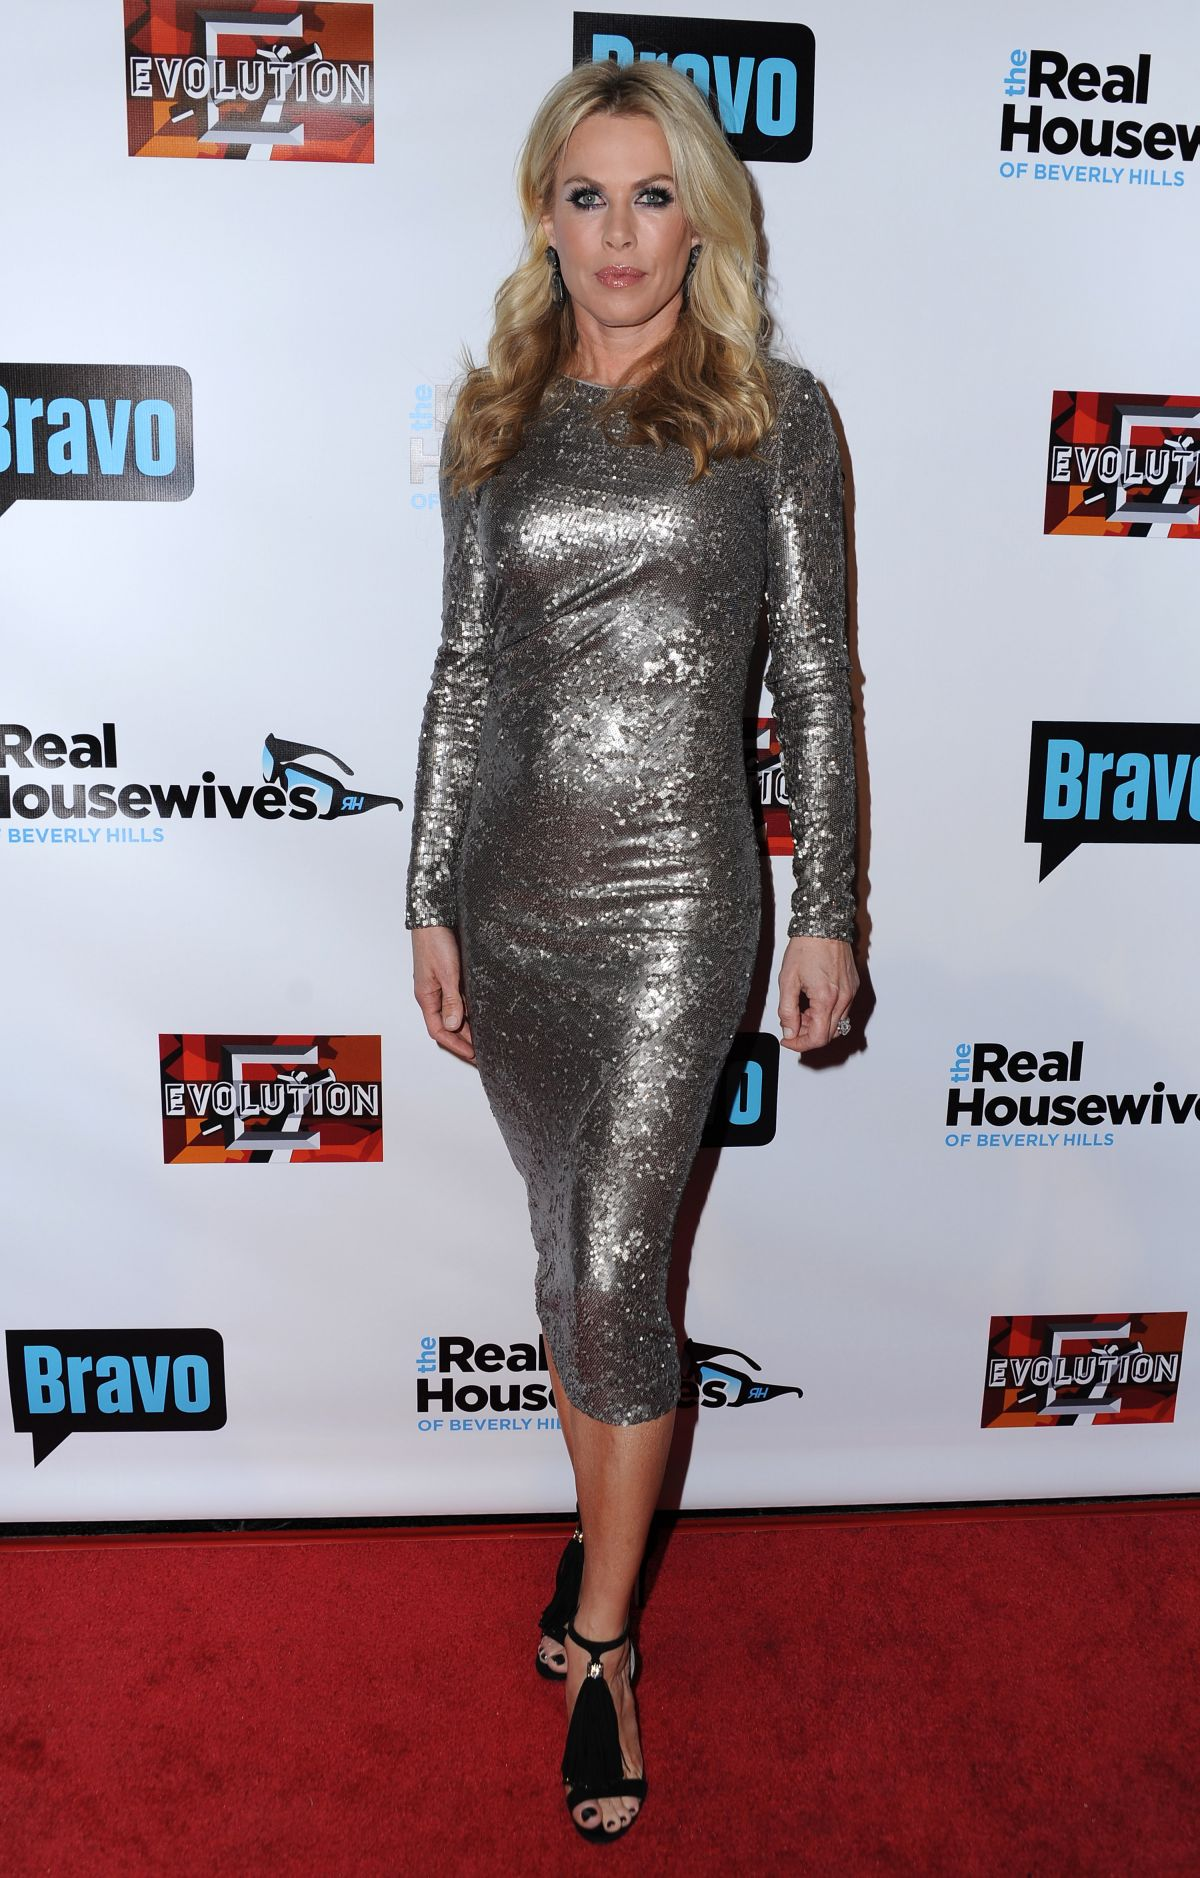 KATHRYN EDWARDS at The Real Housewives of Beverly Hills, Season 6 Premiere Party in Hollywood 12/03/2015